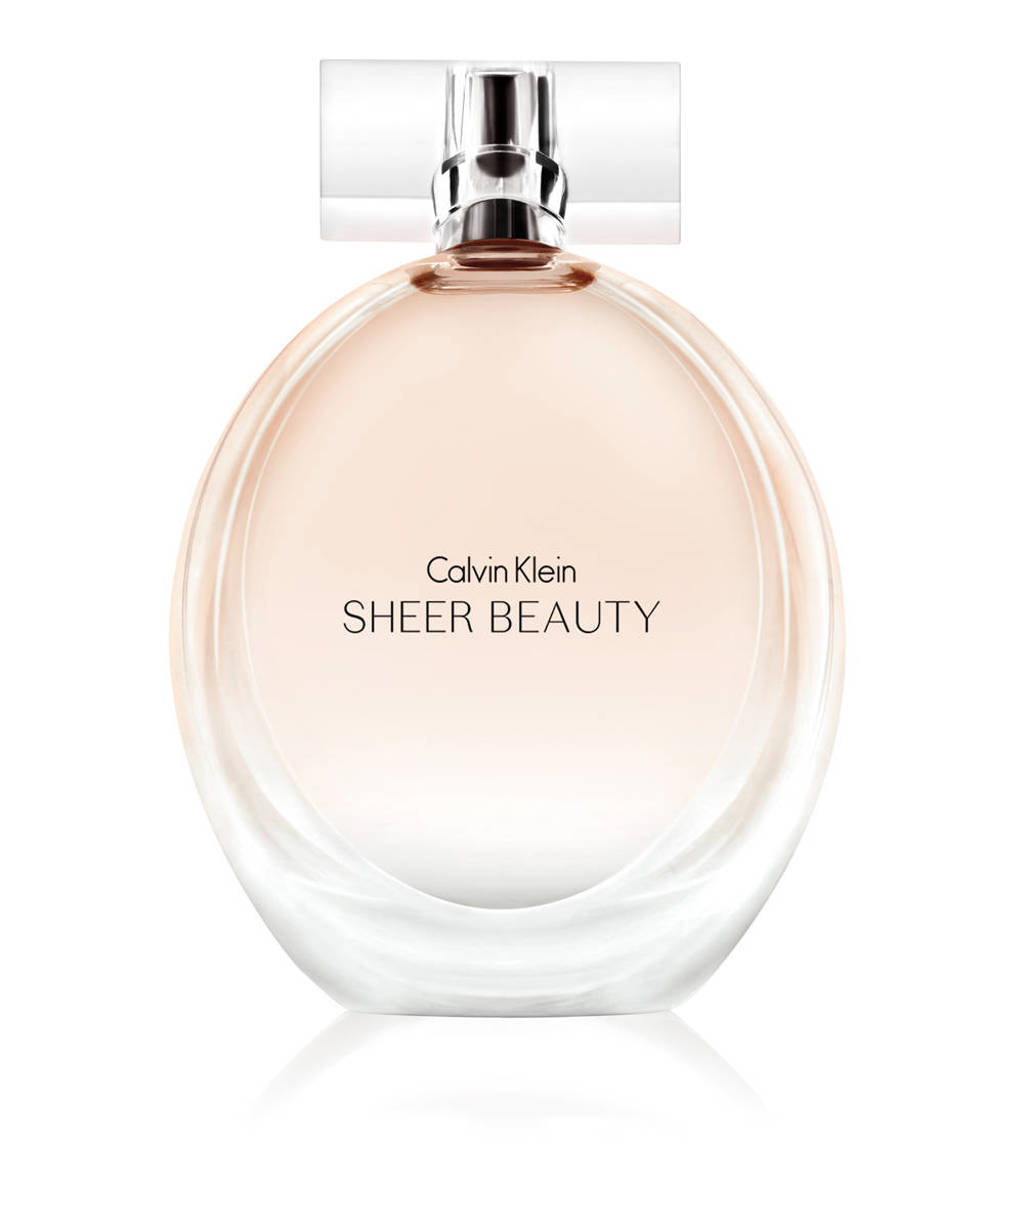 CALVIN KLEIN Sheer Beauty eau de toilette  - 100 ml